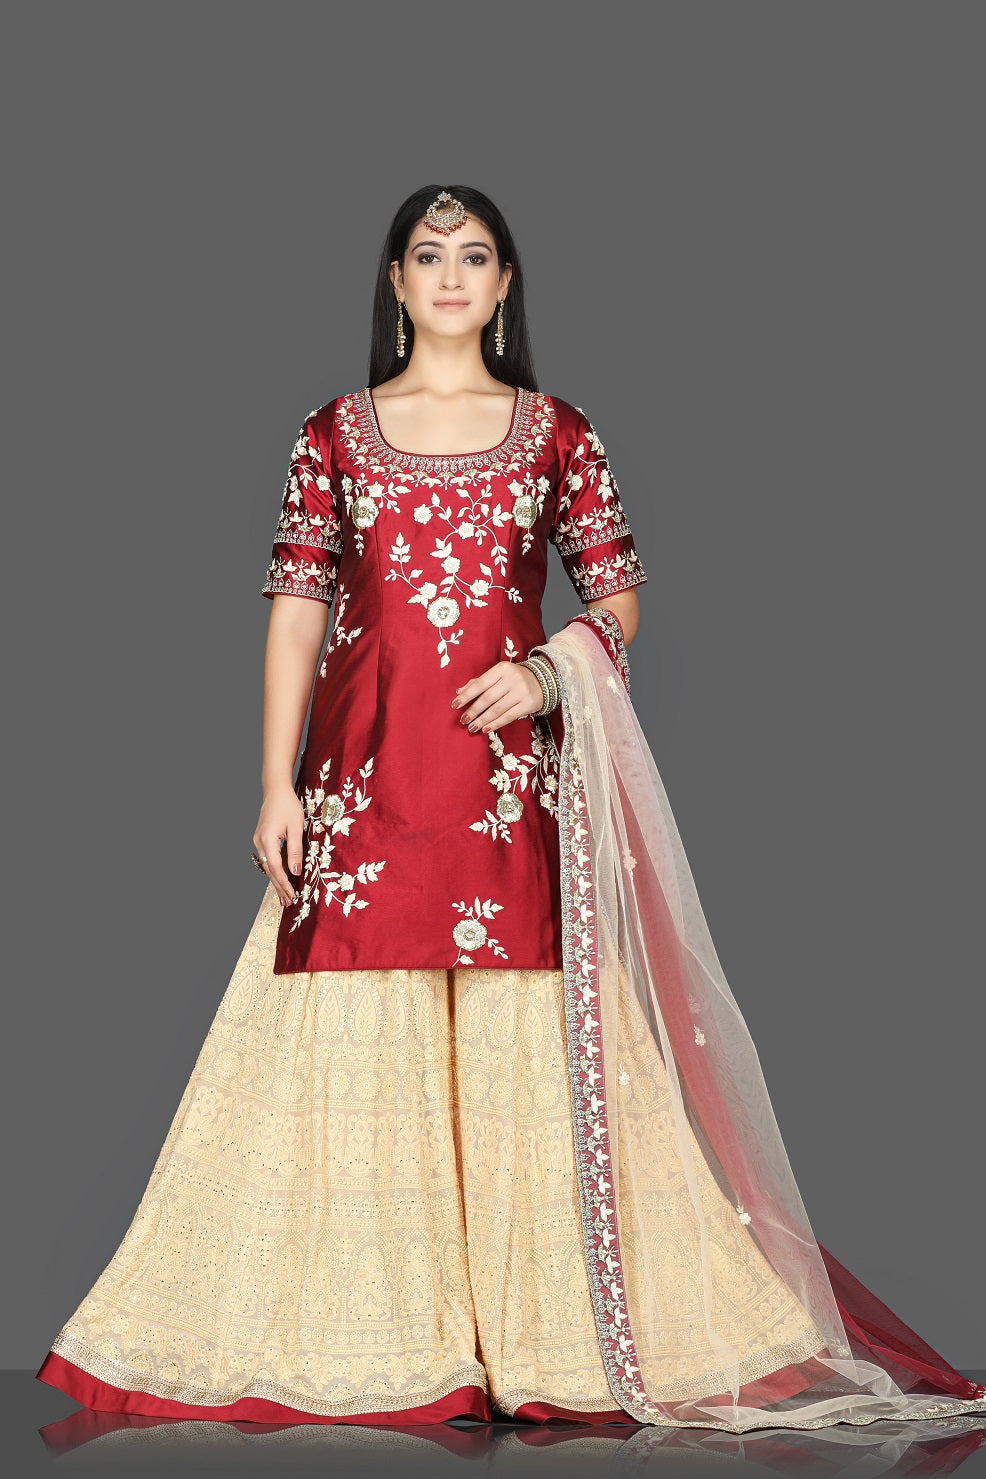 Buy red and cream embroidered raw silk net sharara suit online in USA with dupatta. Flaunt ethnic fashion with exquisite designer lehenga, Indian wedding dresses, Anarkali suits from Pure Elegance Indian fashion boutique in USA.-full view